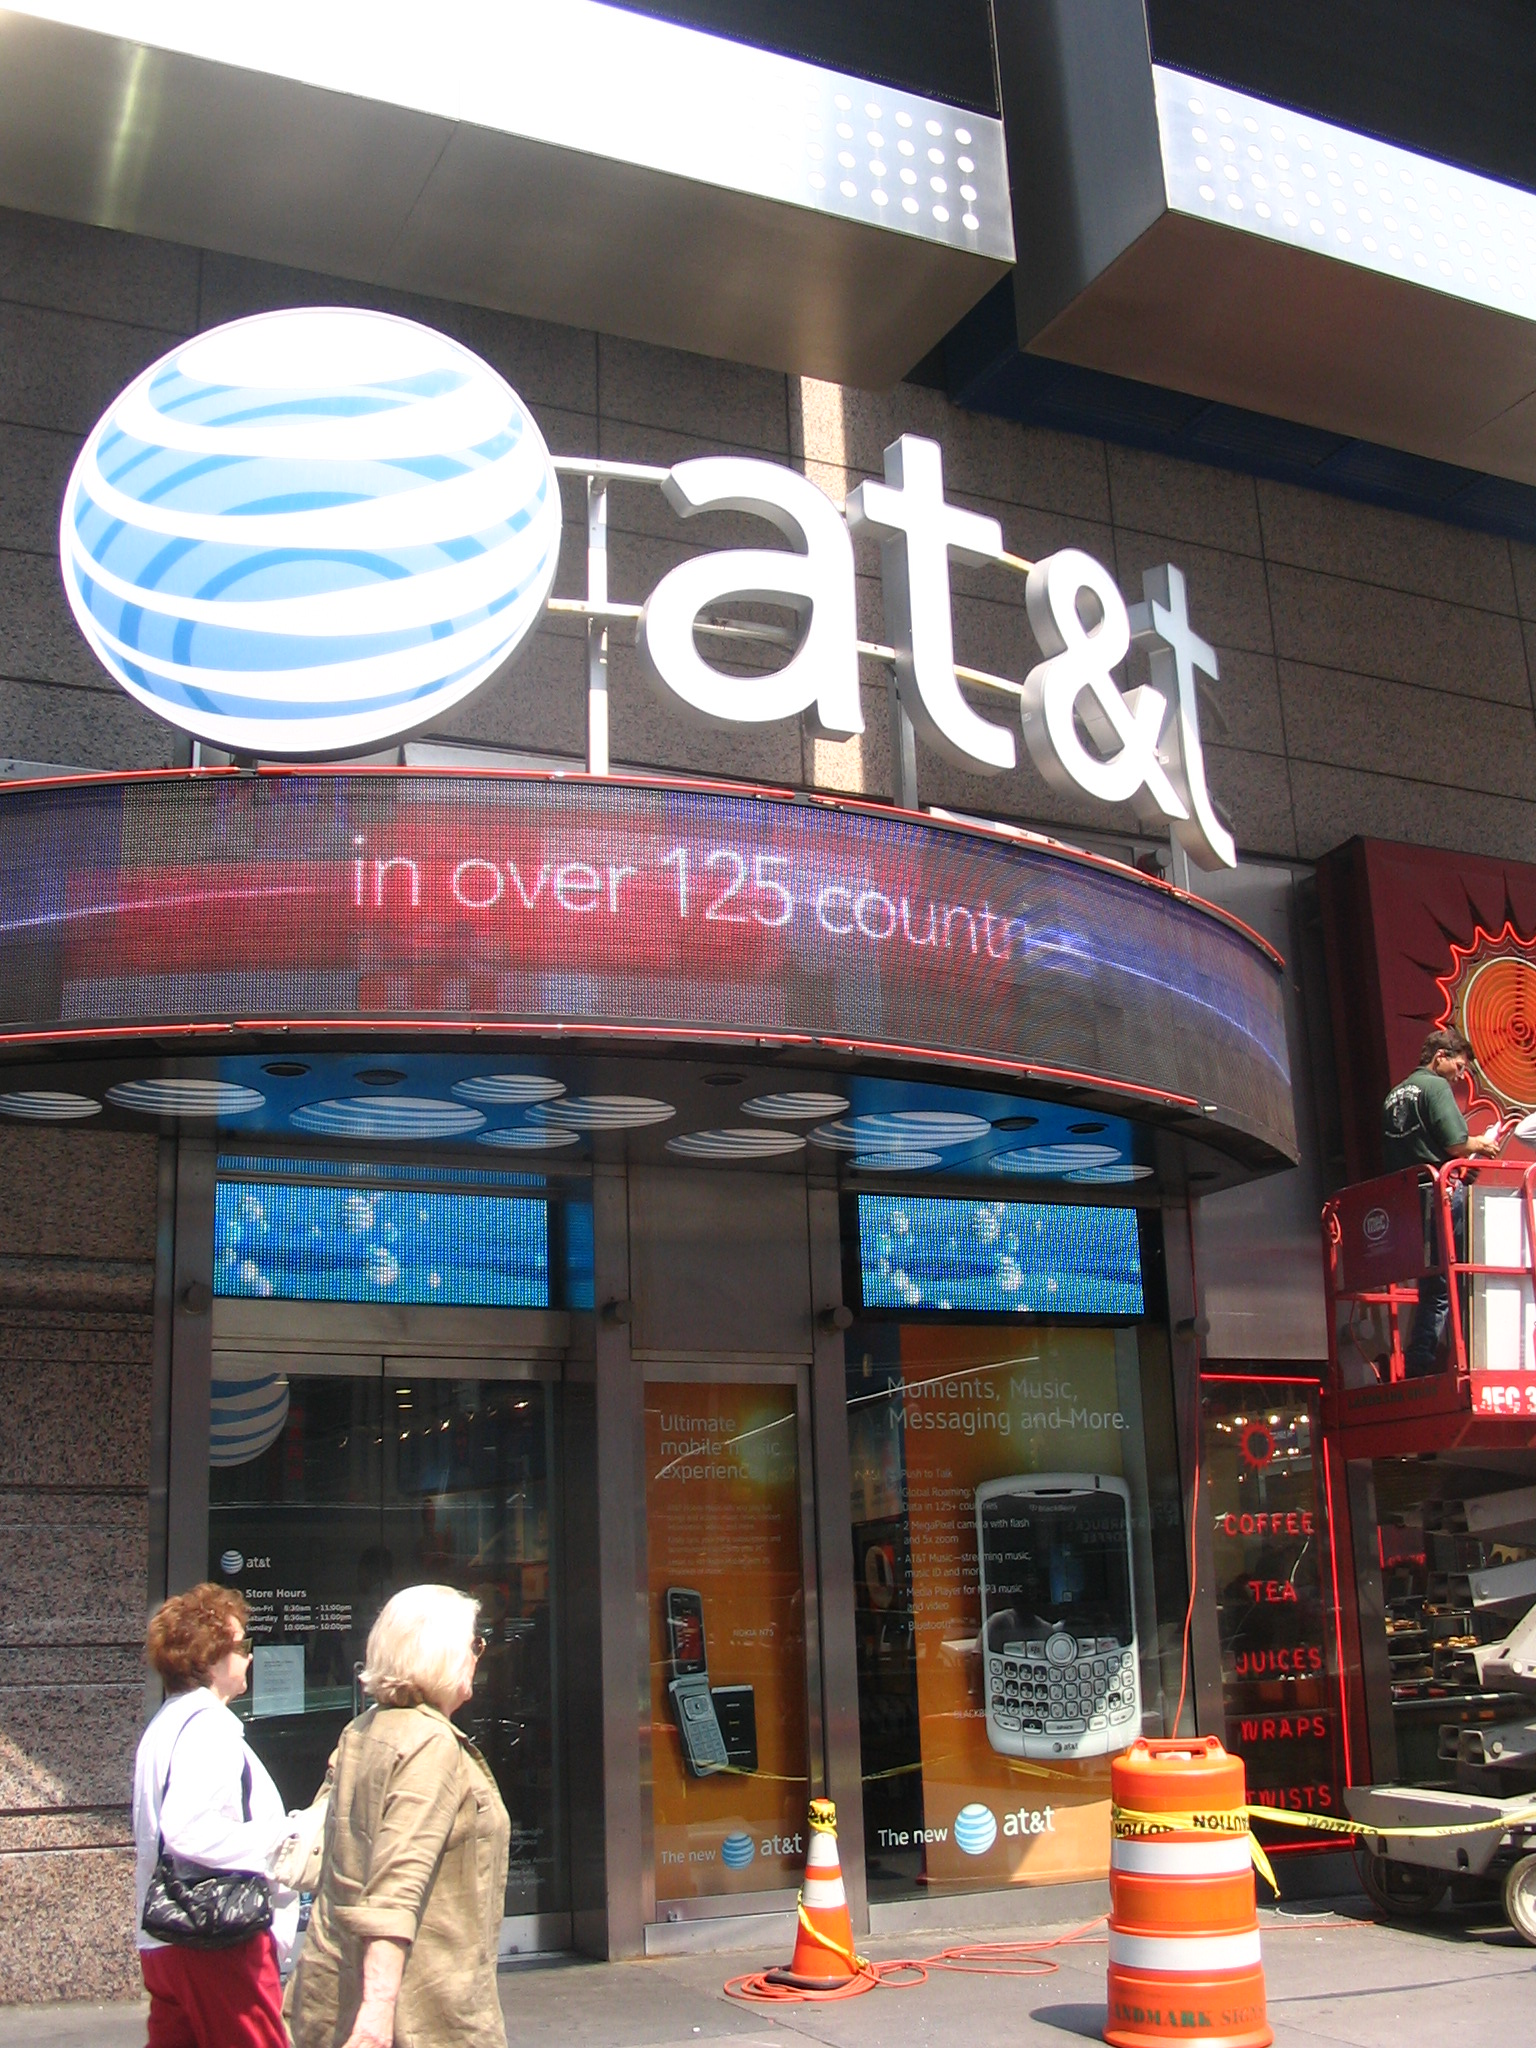 The AT&T store in Times Square